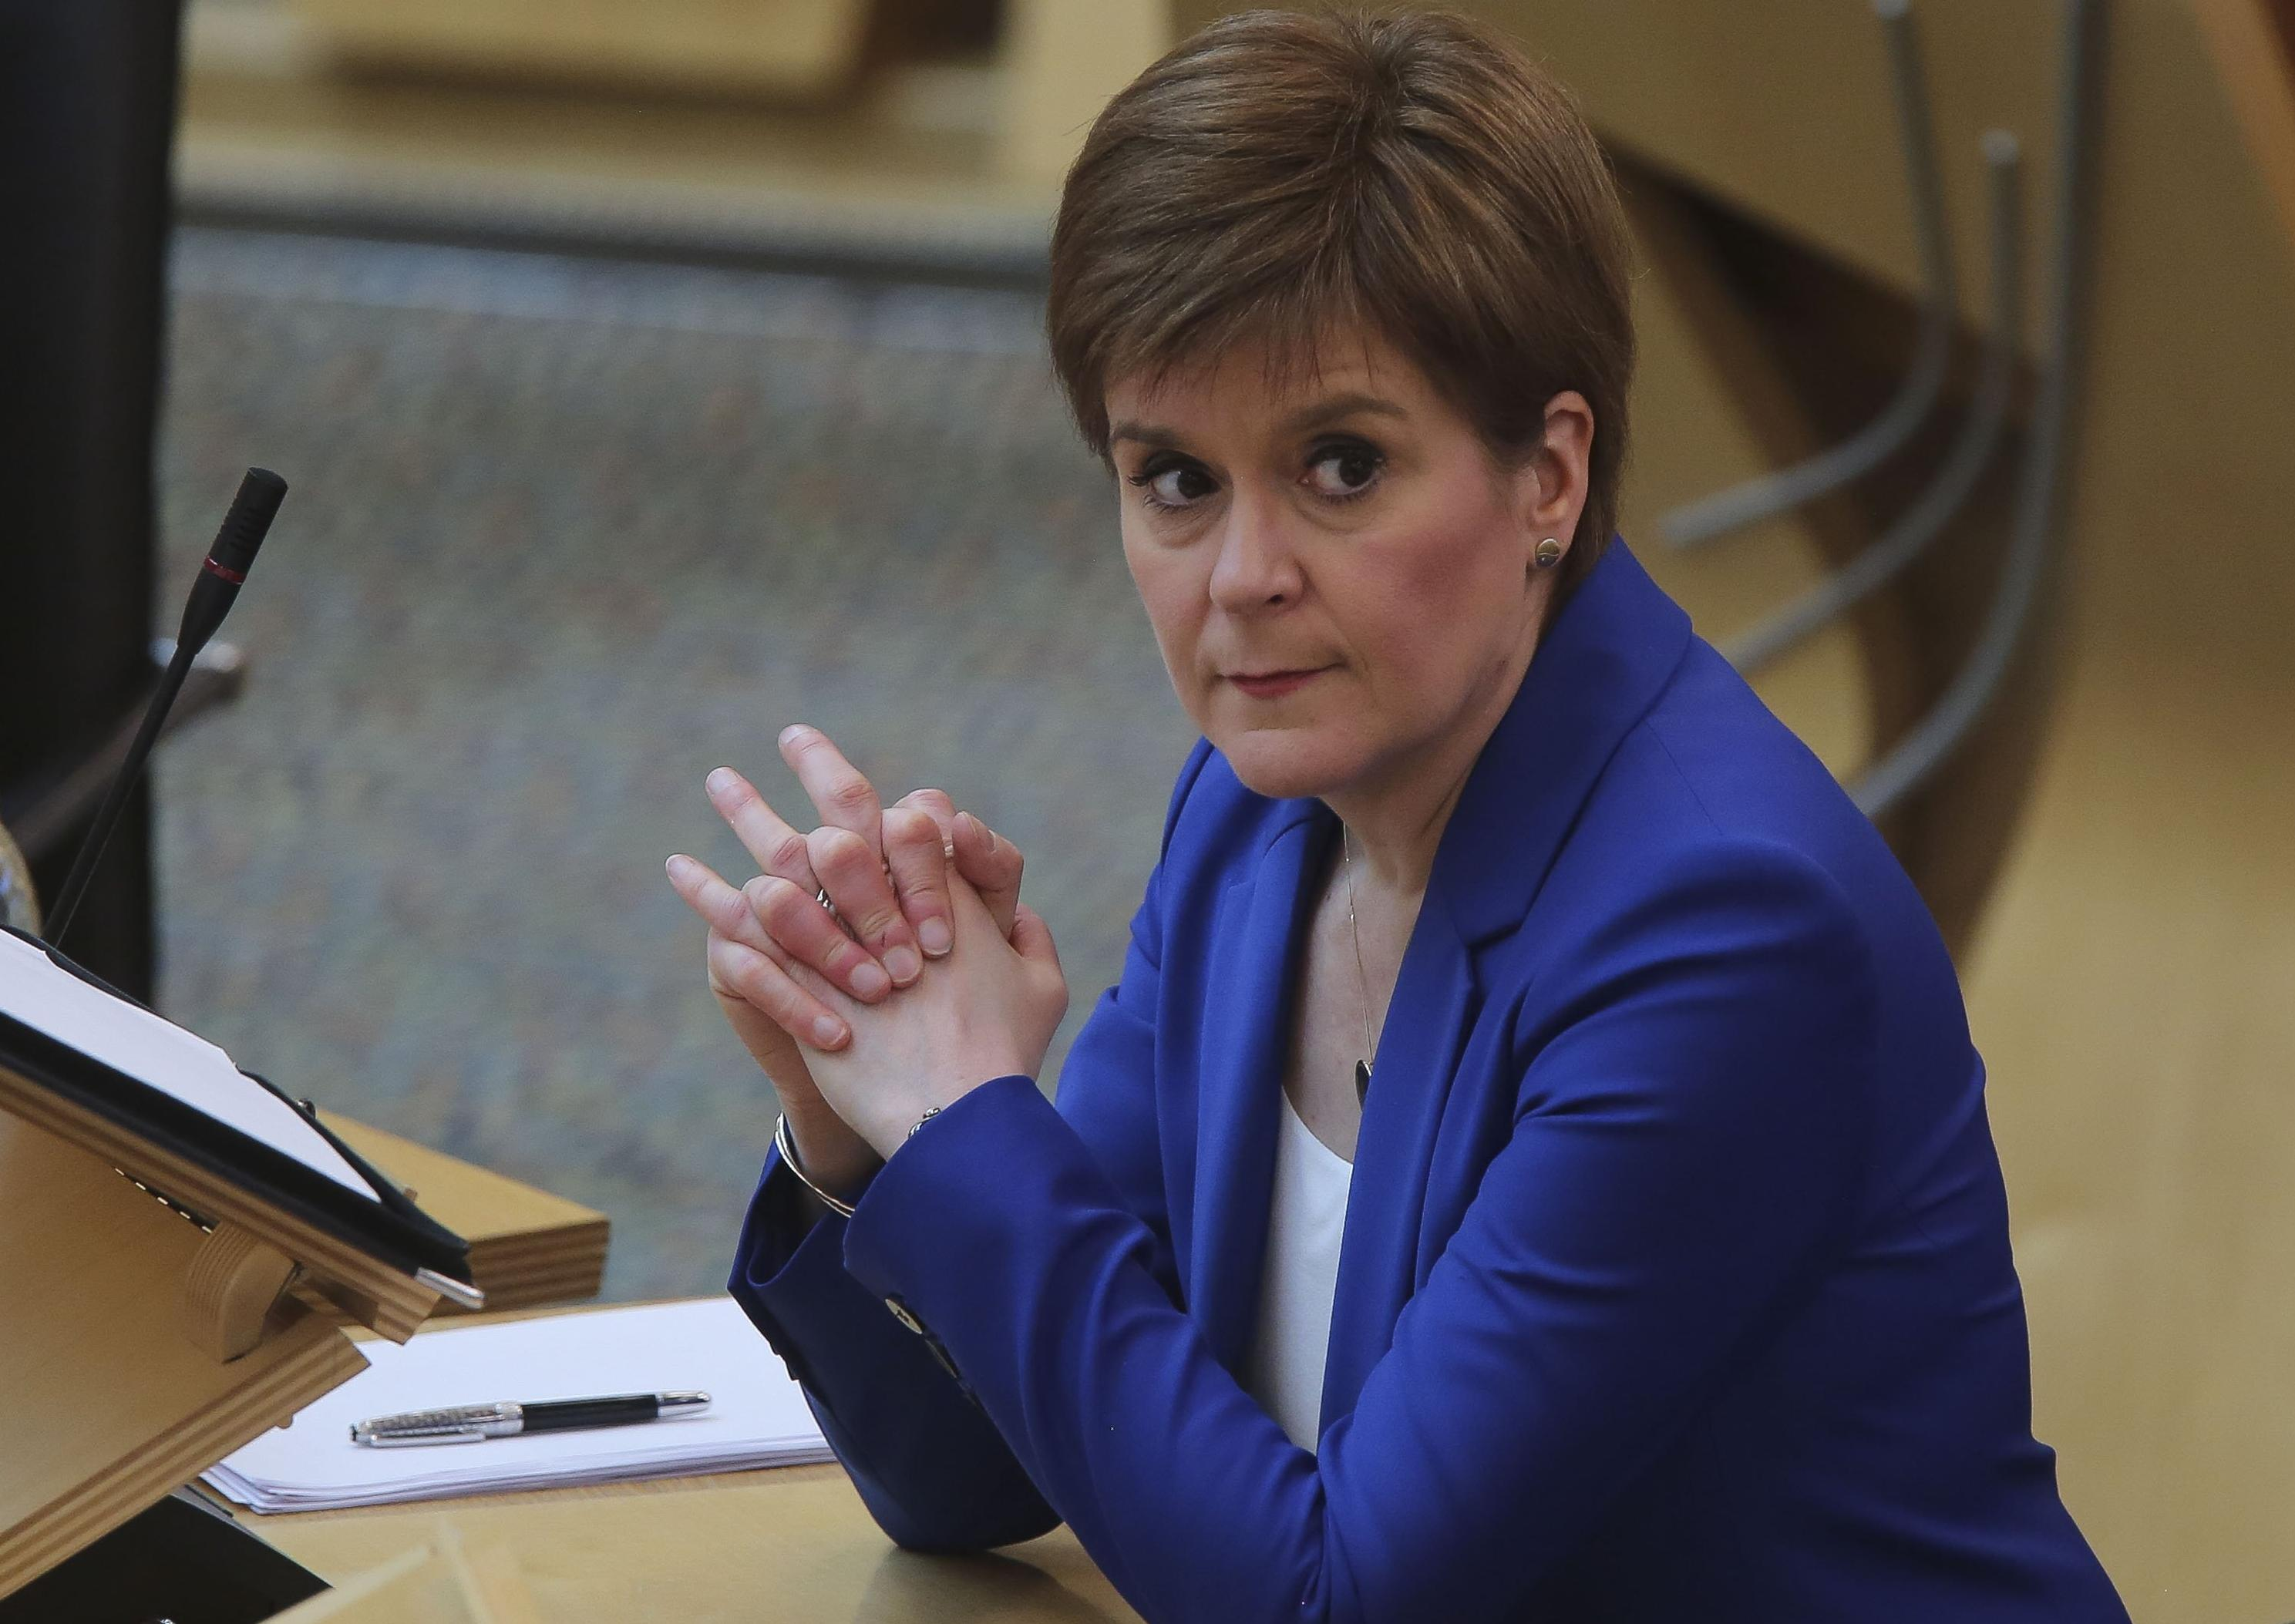 Don't let Nicola Sturgeon's attack on BBC's Sarah Smith deflect from real Covid issues – Brian Wilson